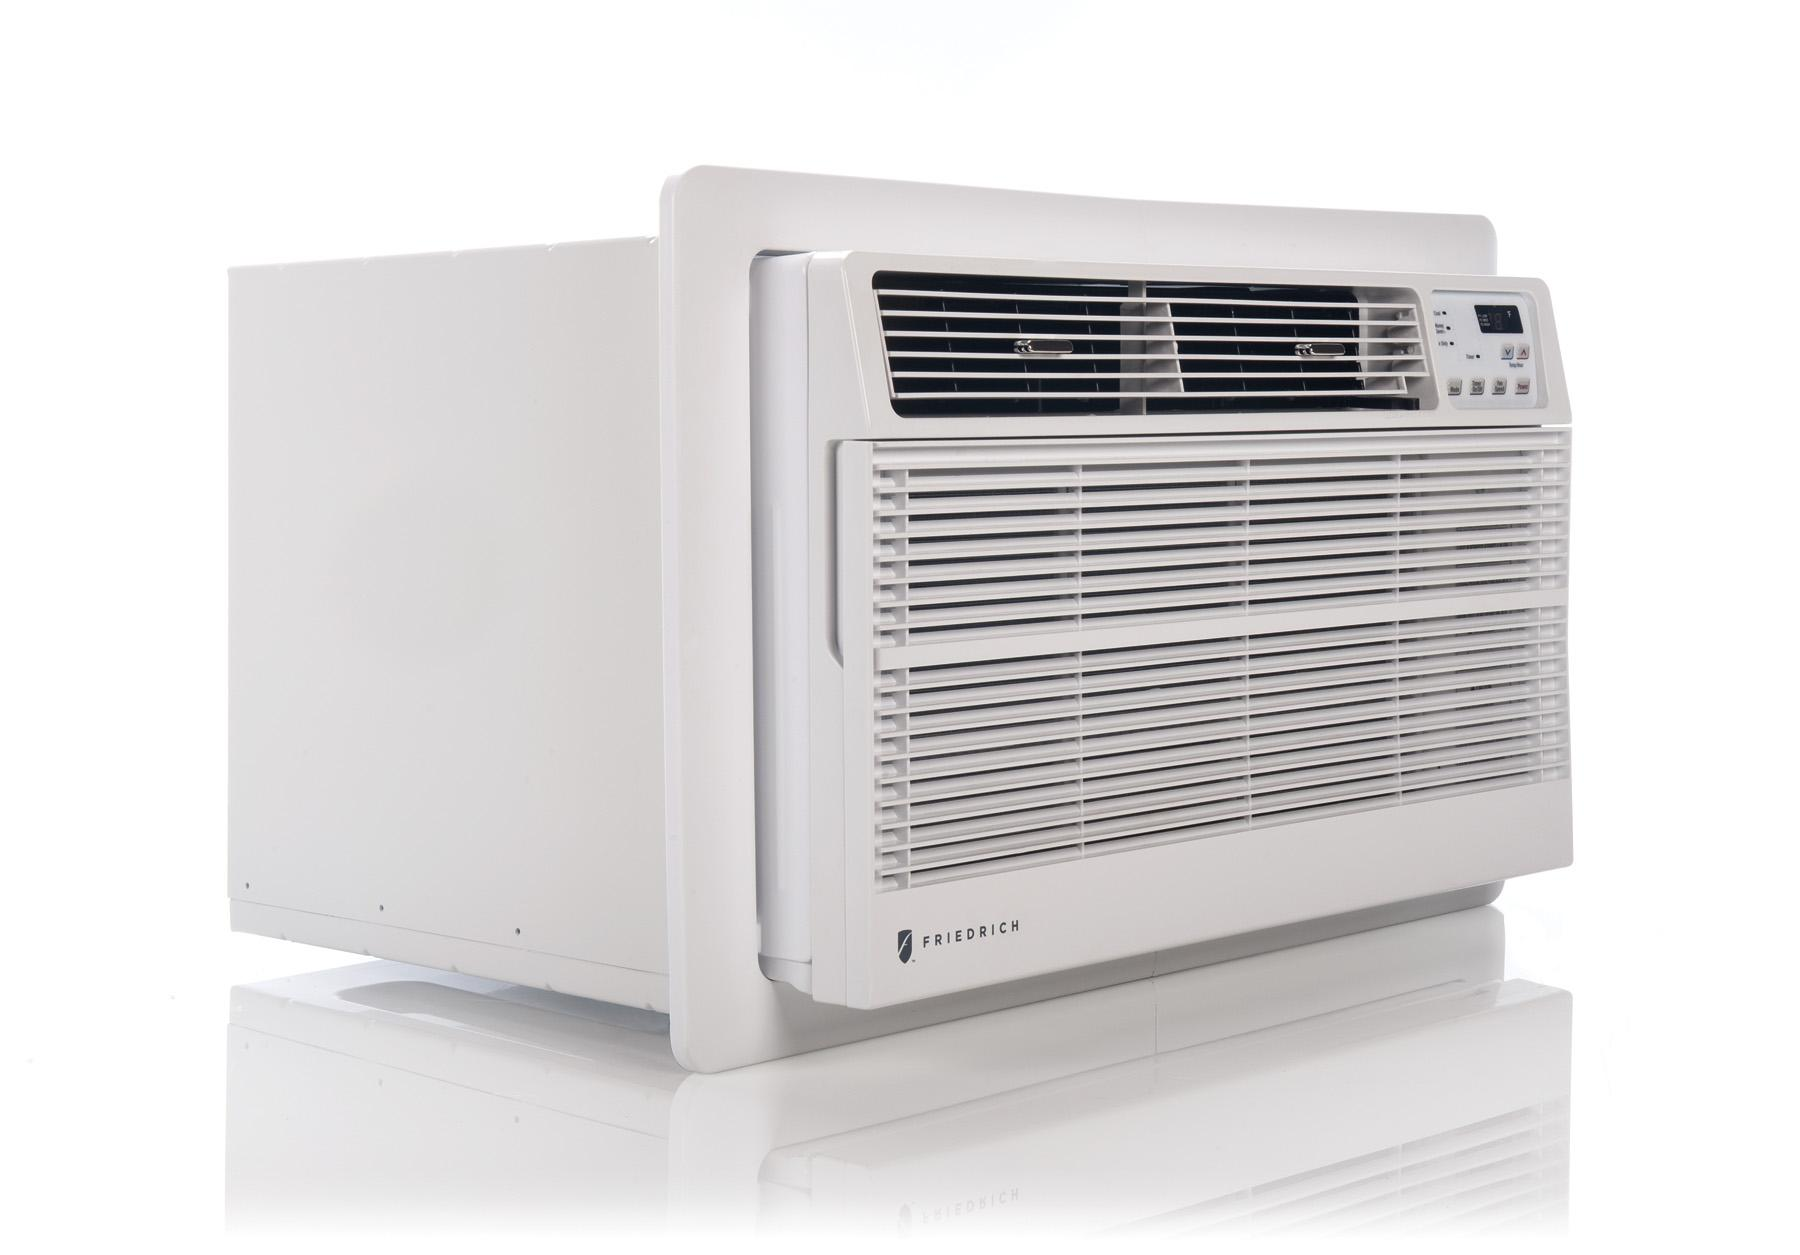 Through The Wall Heating And Cooling Units Amazoncom Friedrich Ue12d33d Thru The Wall Cool With Electric